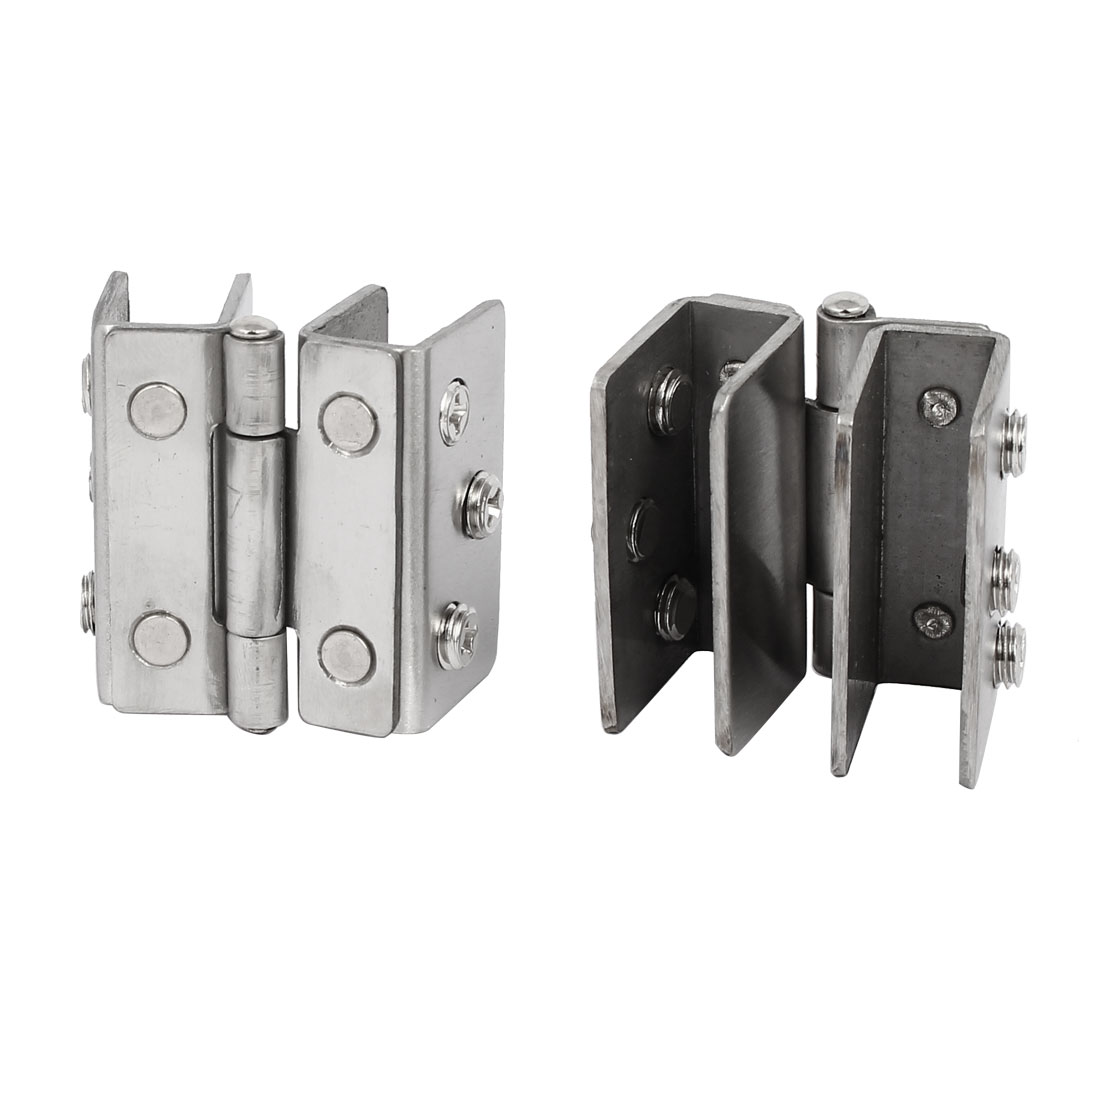 8-10mm Thickness Adjustable Glass Door Double Clip Clamp Hinges 2PCS - image 3 of 4